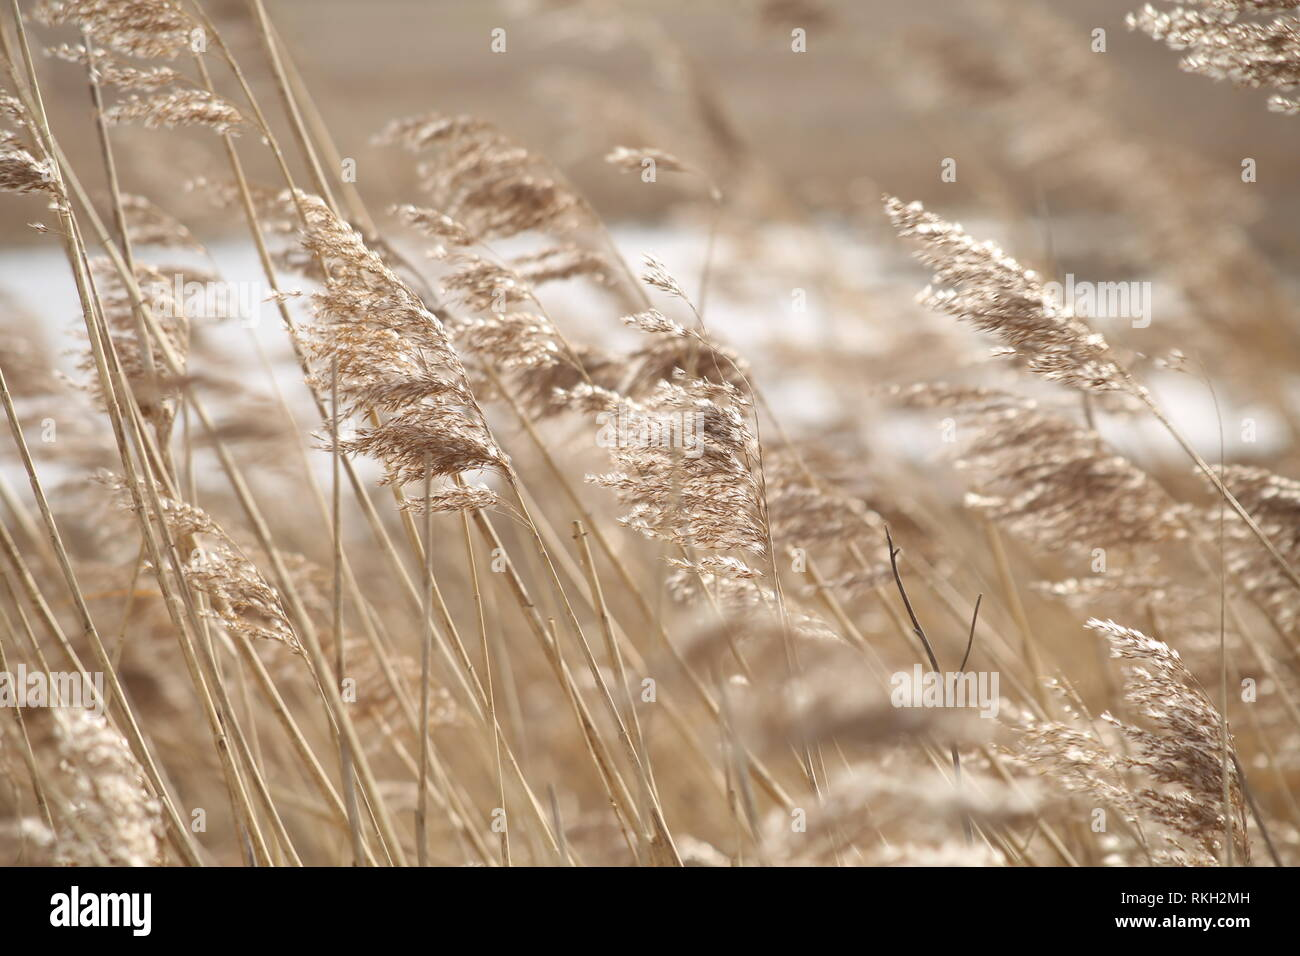 Cinematic motion - A line of Golden Reeds swaying in wind - Stock Image